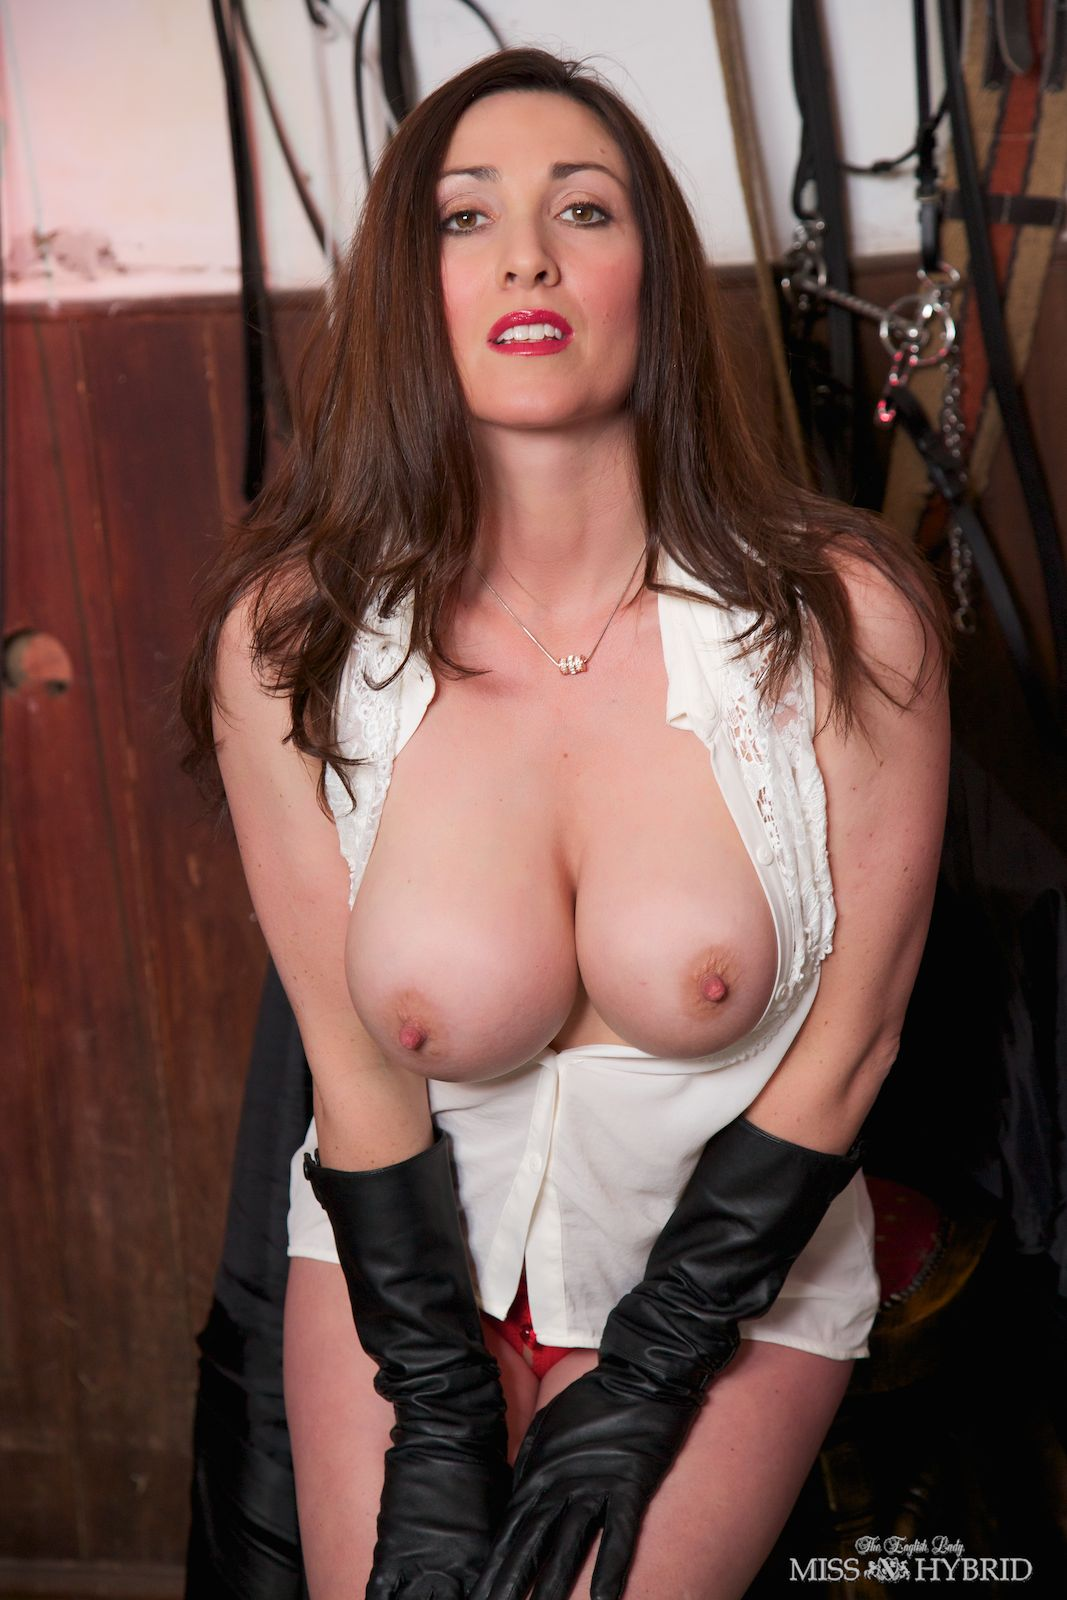 Yes kinky mistress attractively! Realistic